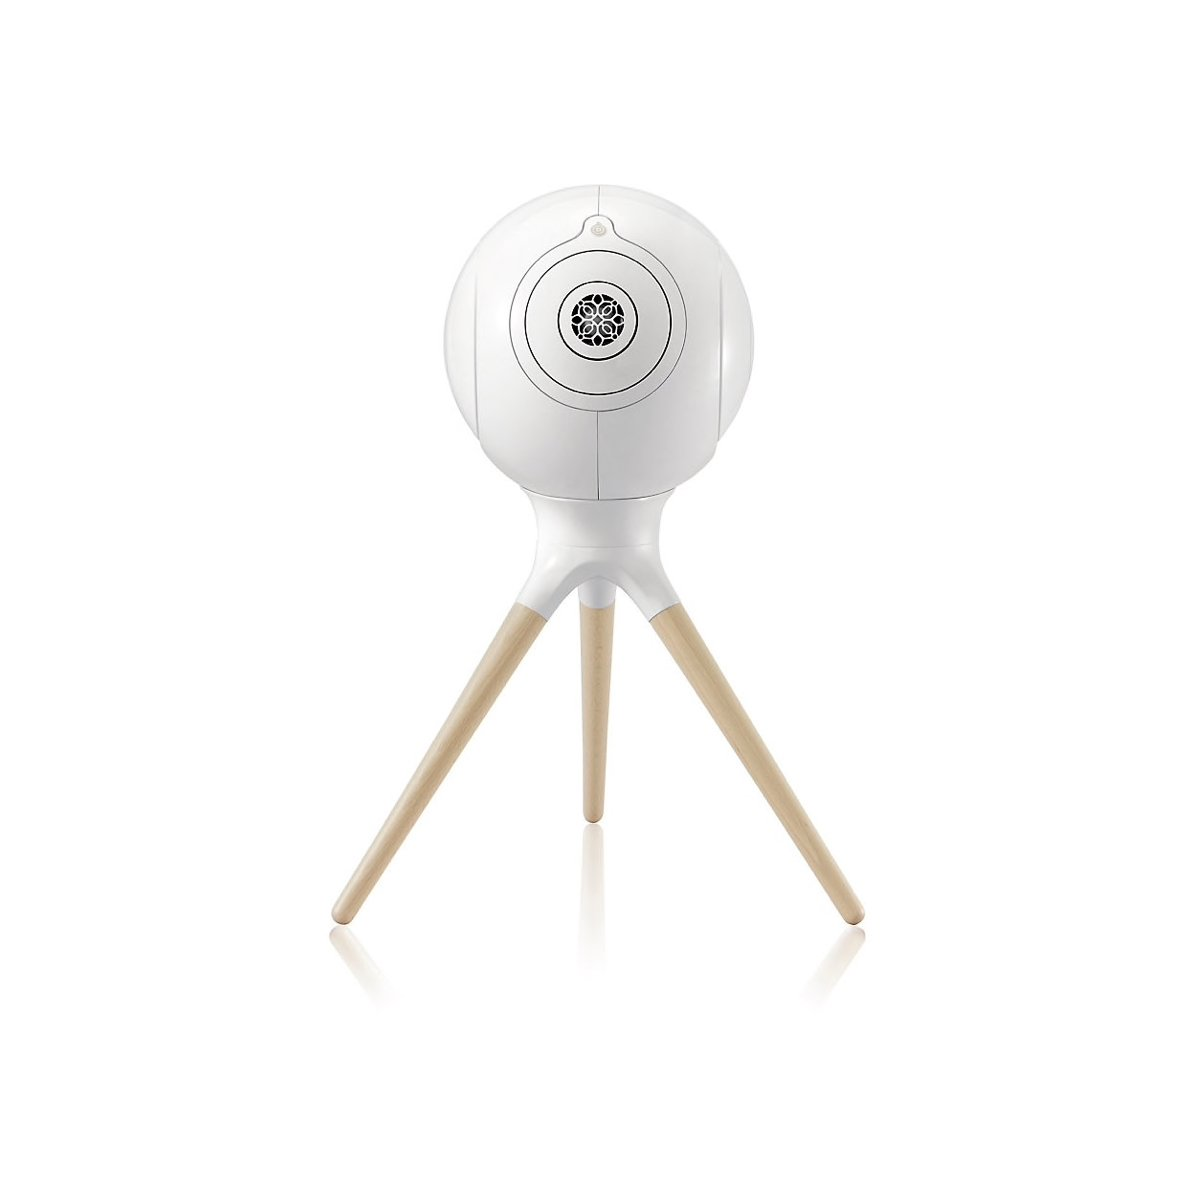 Devialet Treepod Stand for Phantom Speaker, Devialet, Speaker Stand - Auratech LLC